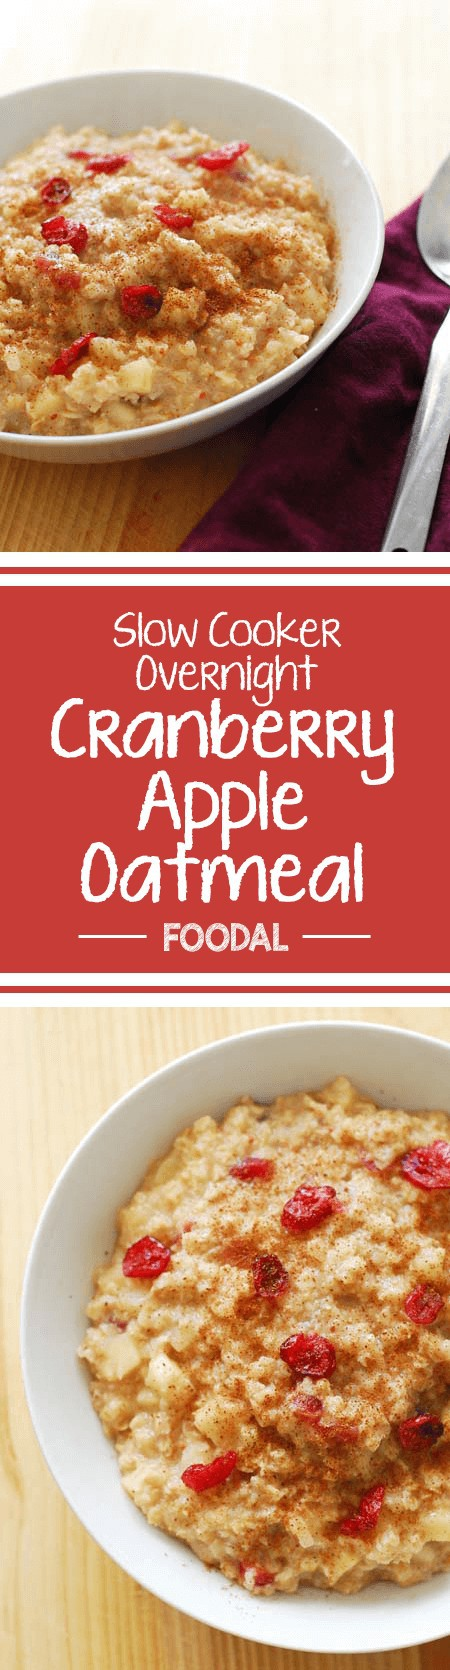 Turn a boring breakfast into something special with this sweet cranberry apple oatmeal while saving time in the morning by preparing it the night before. Slow cooked oatmeal with fruit added turns a plain oatmeal breakfast into something fantastic! Say goodbye to instant oatmeal forever! https://foodal.com/recipes/breakfast/slow-cooker-overnight-cranberry-apple-oatmeal/